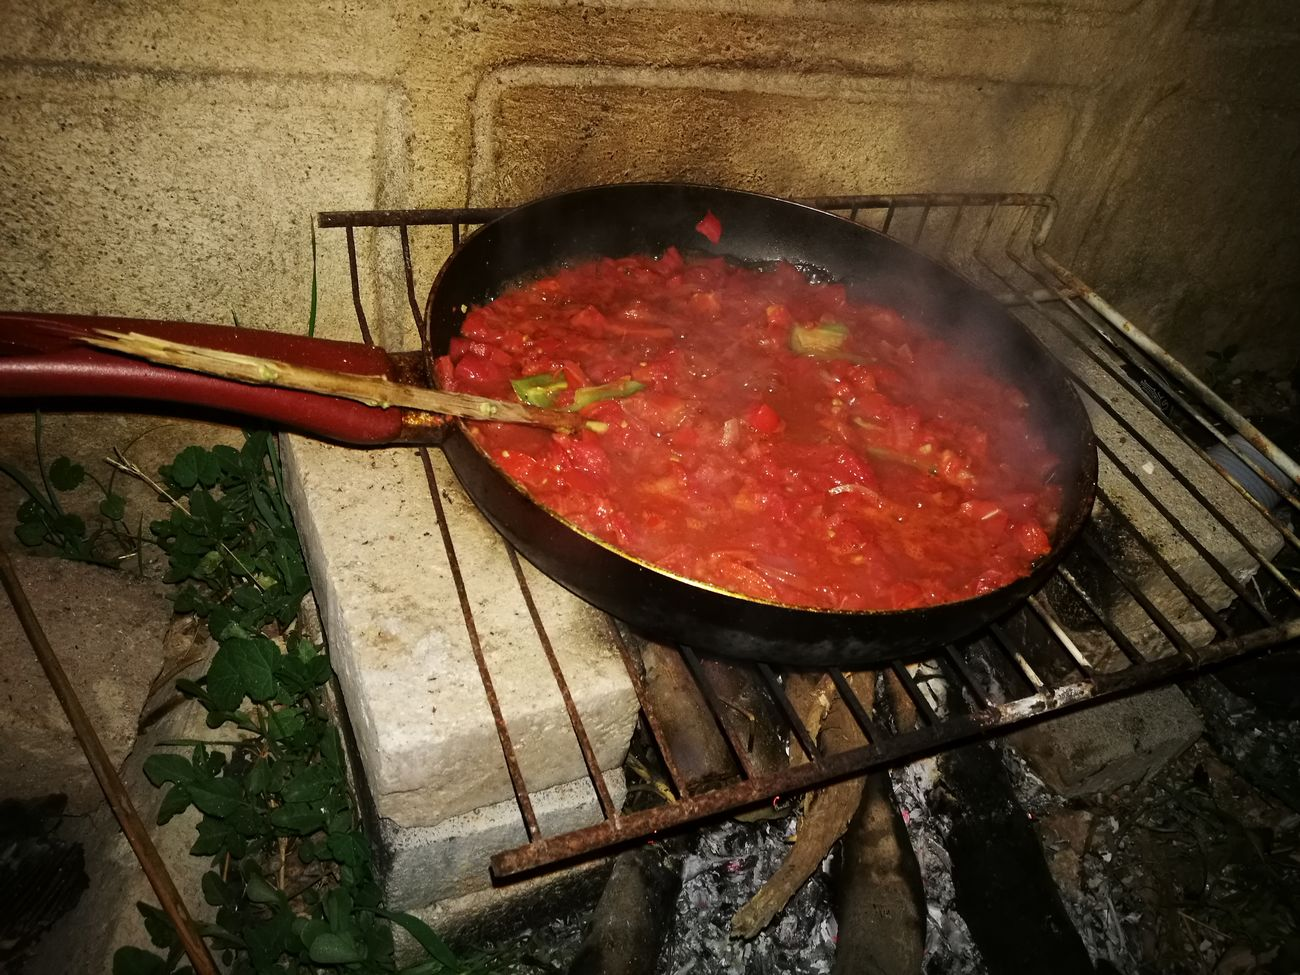 Tomato Sauce Hot Spices Huawei P9 Plus Special👌shot Nightshot🌙 In The Garden Food Ready-to-eat